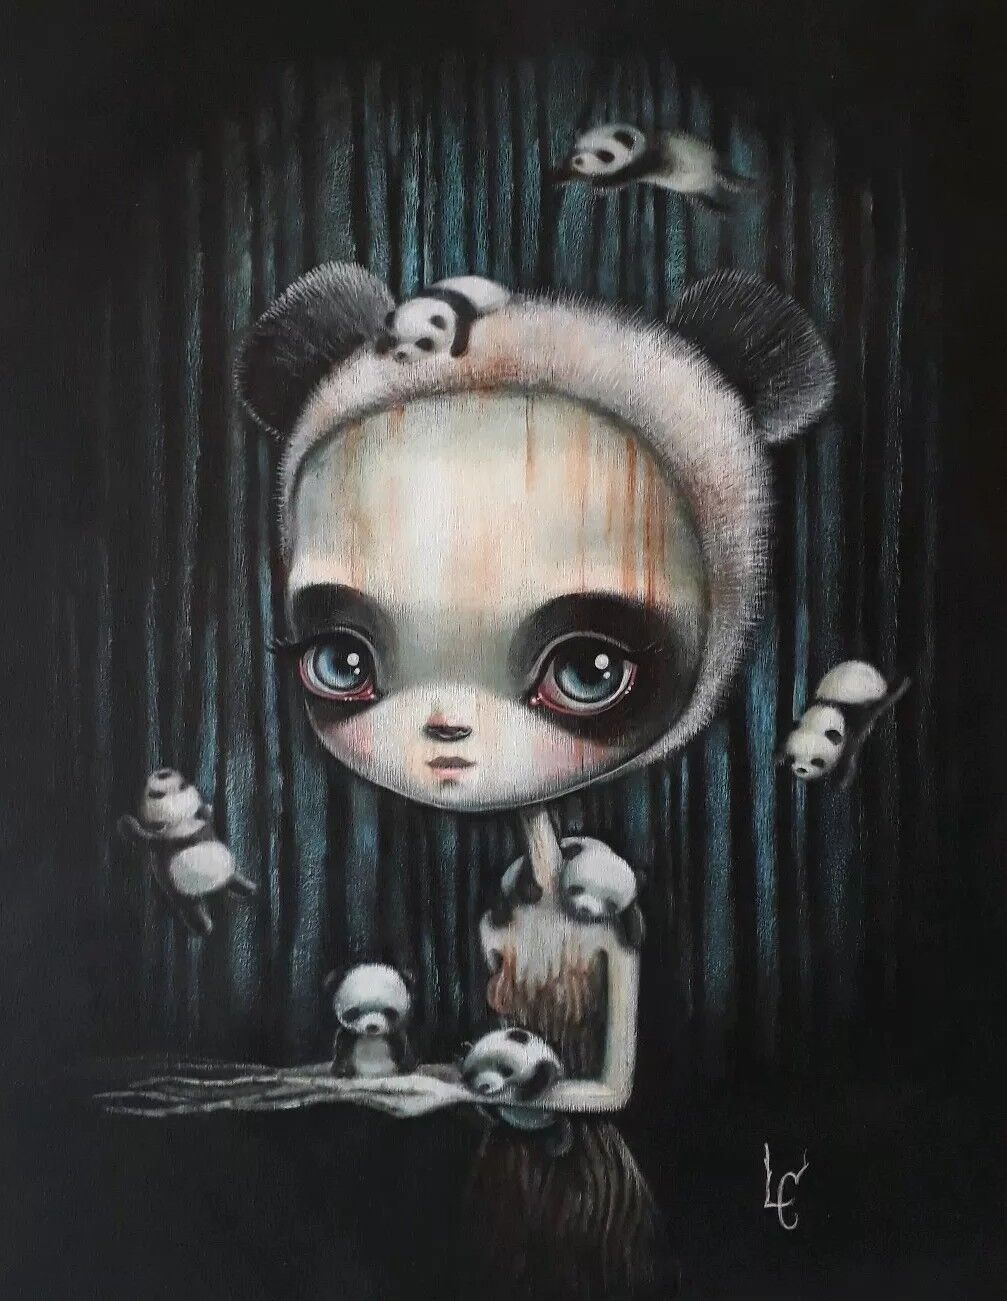 Acrylic painting. Laura Farbes. 64 Farbes. Surrealism. Kidrobot dunny. Tree girl